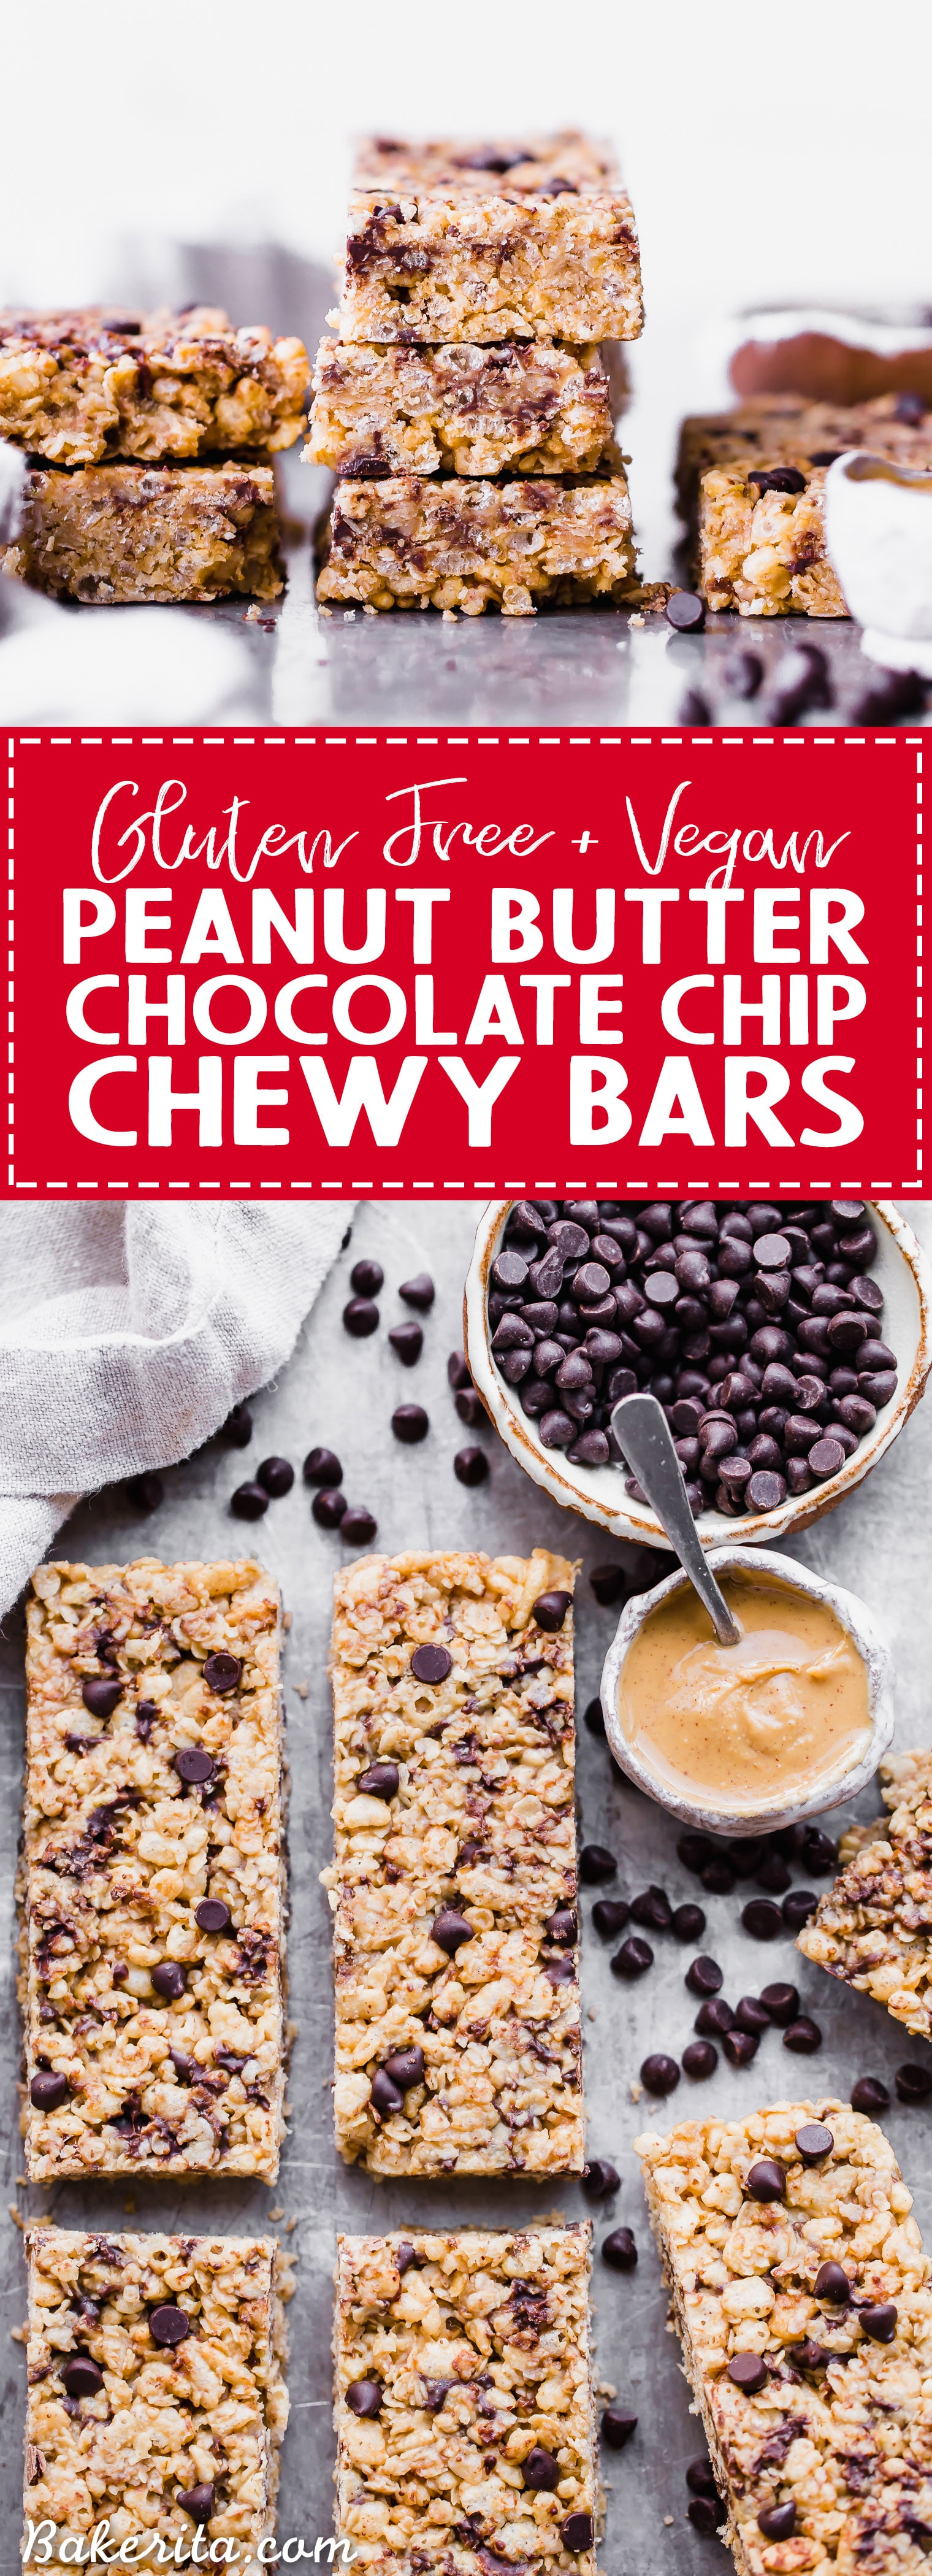 These Peanut Butter Chocolate Chip Chewy Bars will bring you right back to your favorite childhood snack! This homemade, no-bake version is way more delicious with a short and simple ingredients list. They're gluten-free and vegan, too!